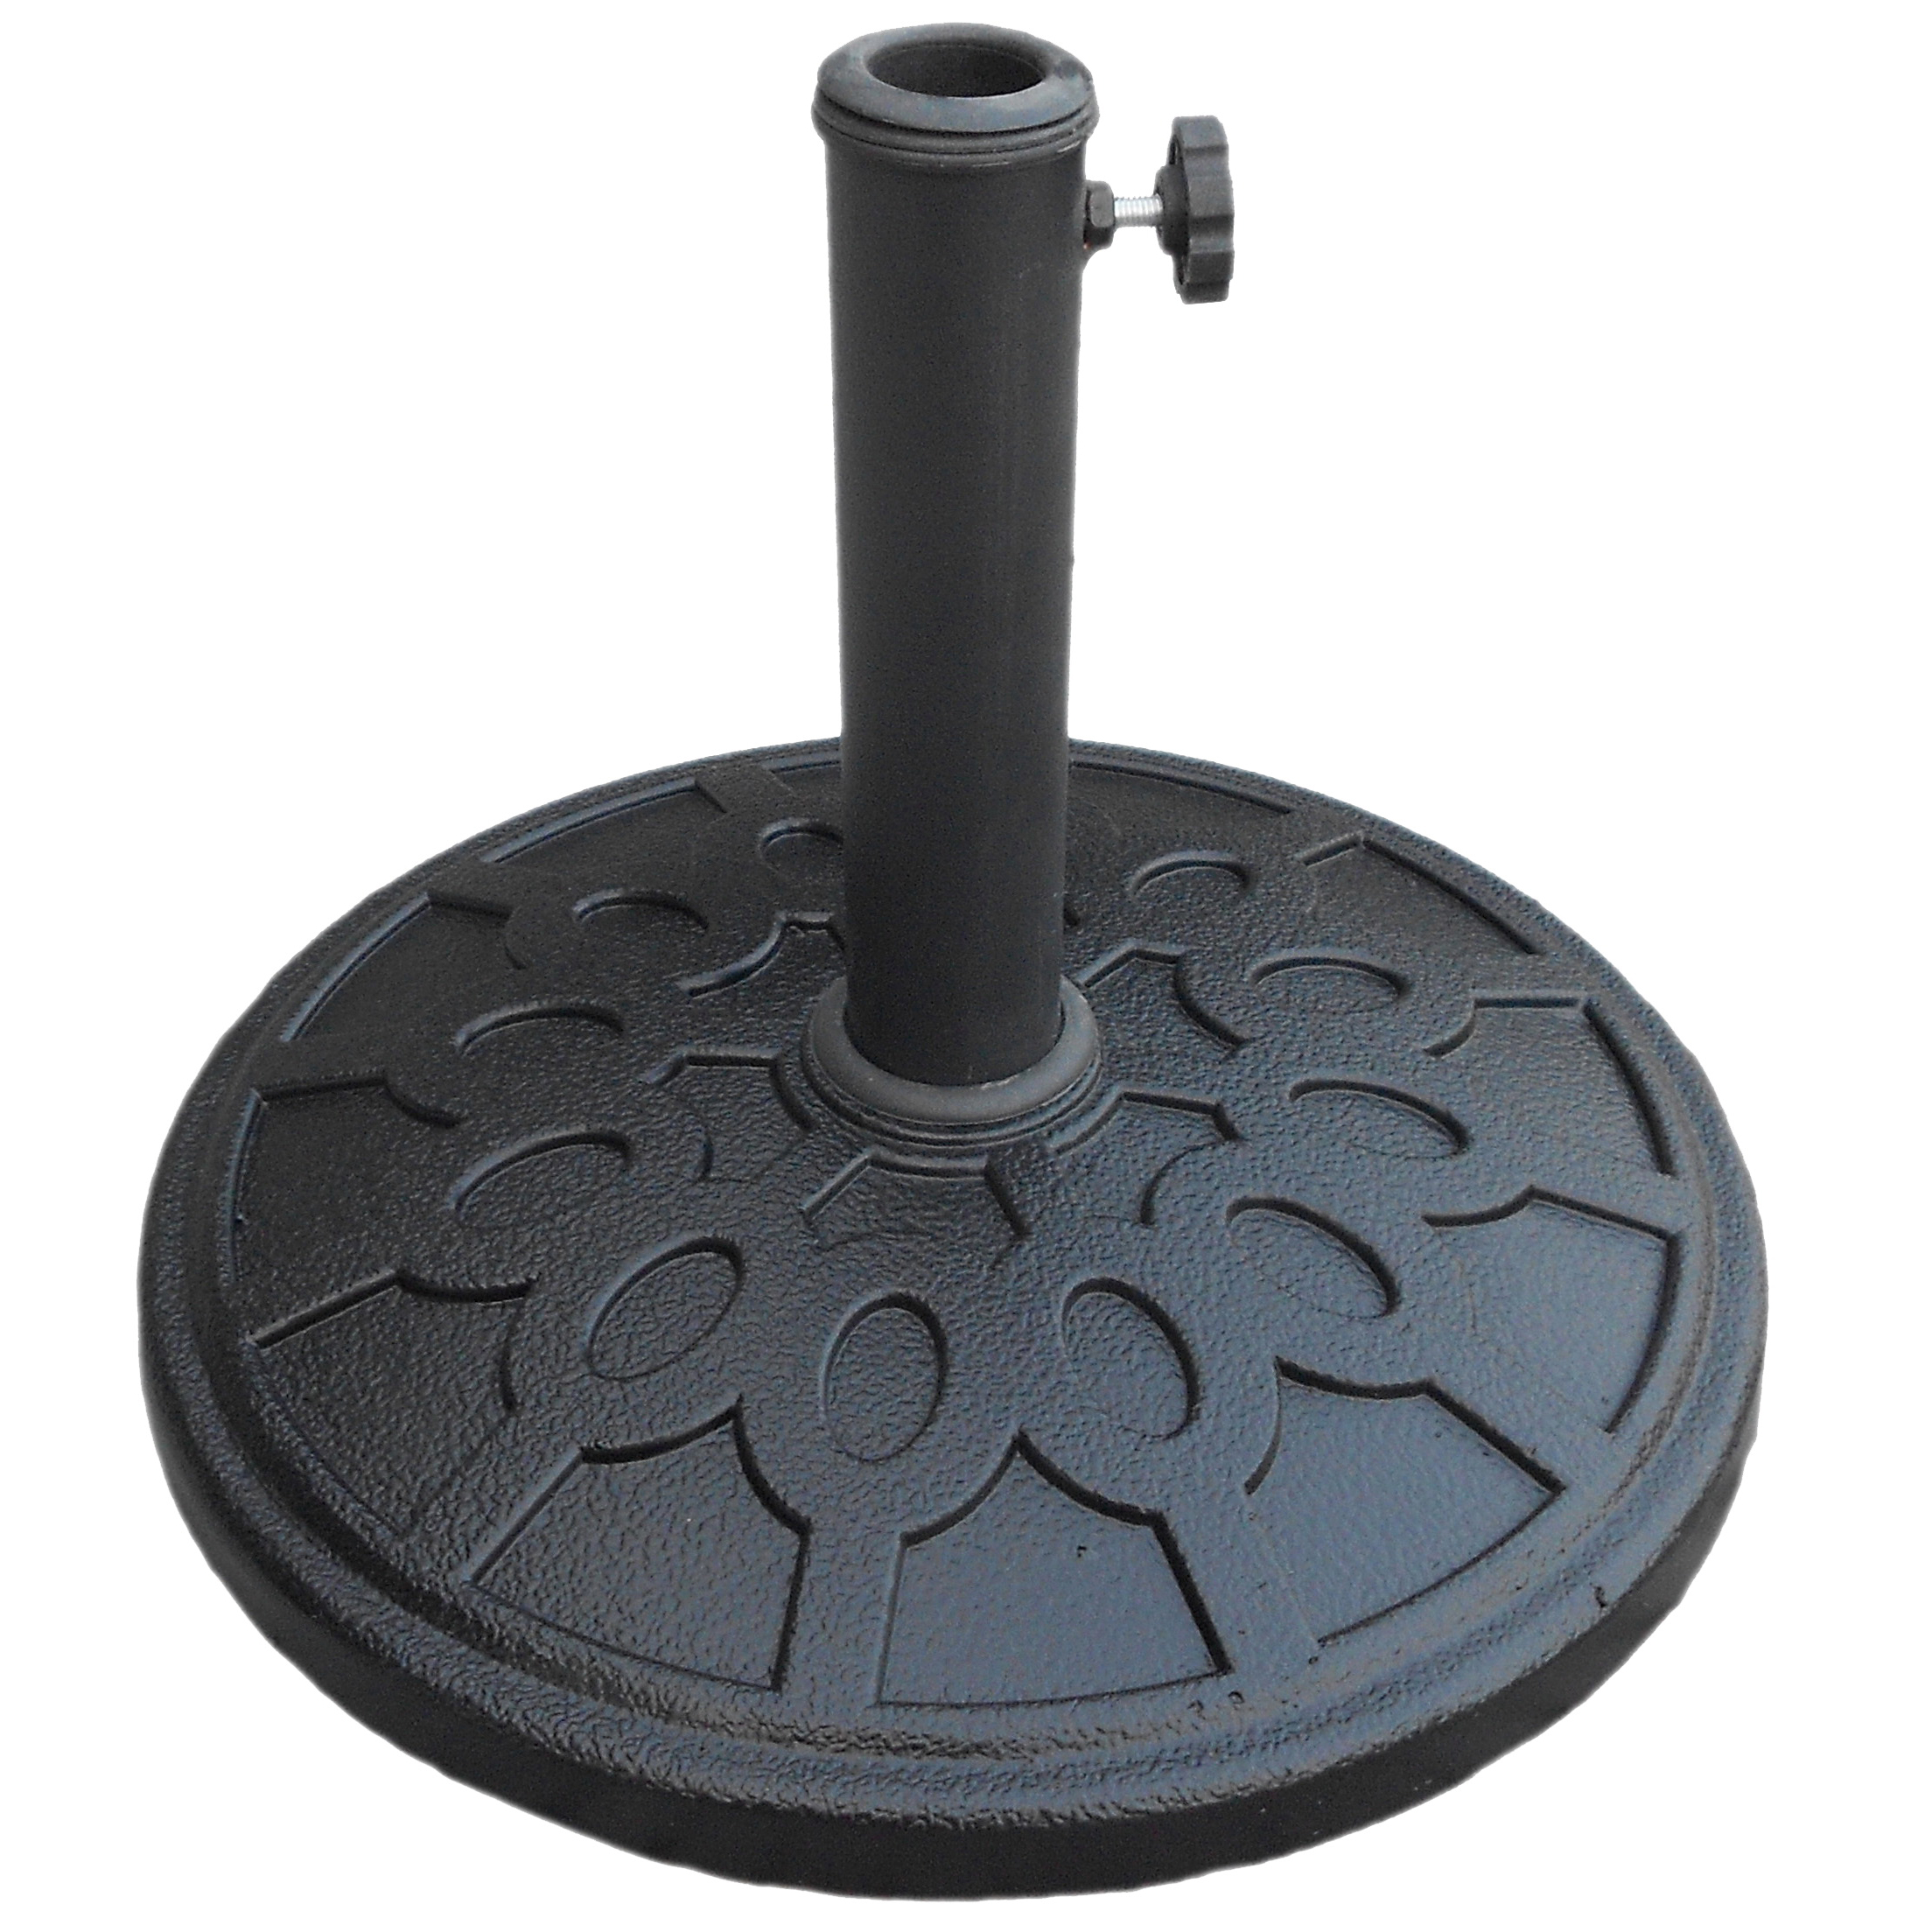 Picture of Seasonal Trends 69327 Umbrella Base, 17-1/2 in Dia, 13 in H, Round, Resin/Steel/Plastic, Black, For: Outdoor Use